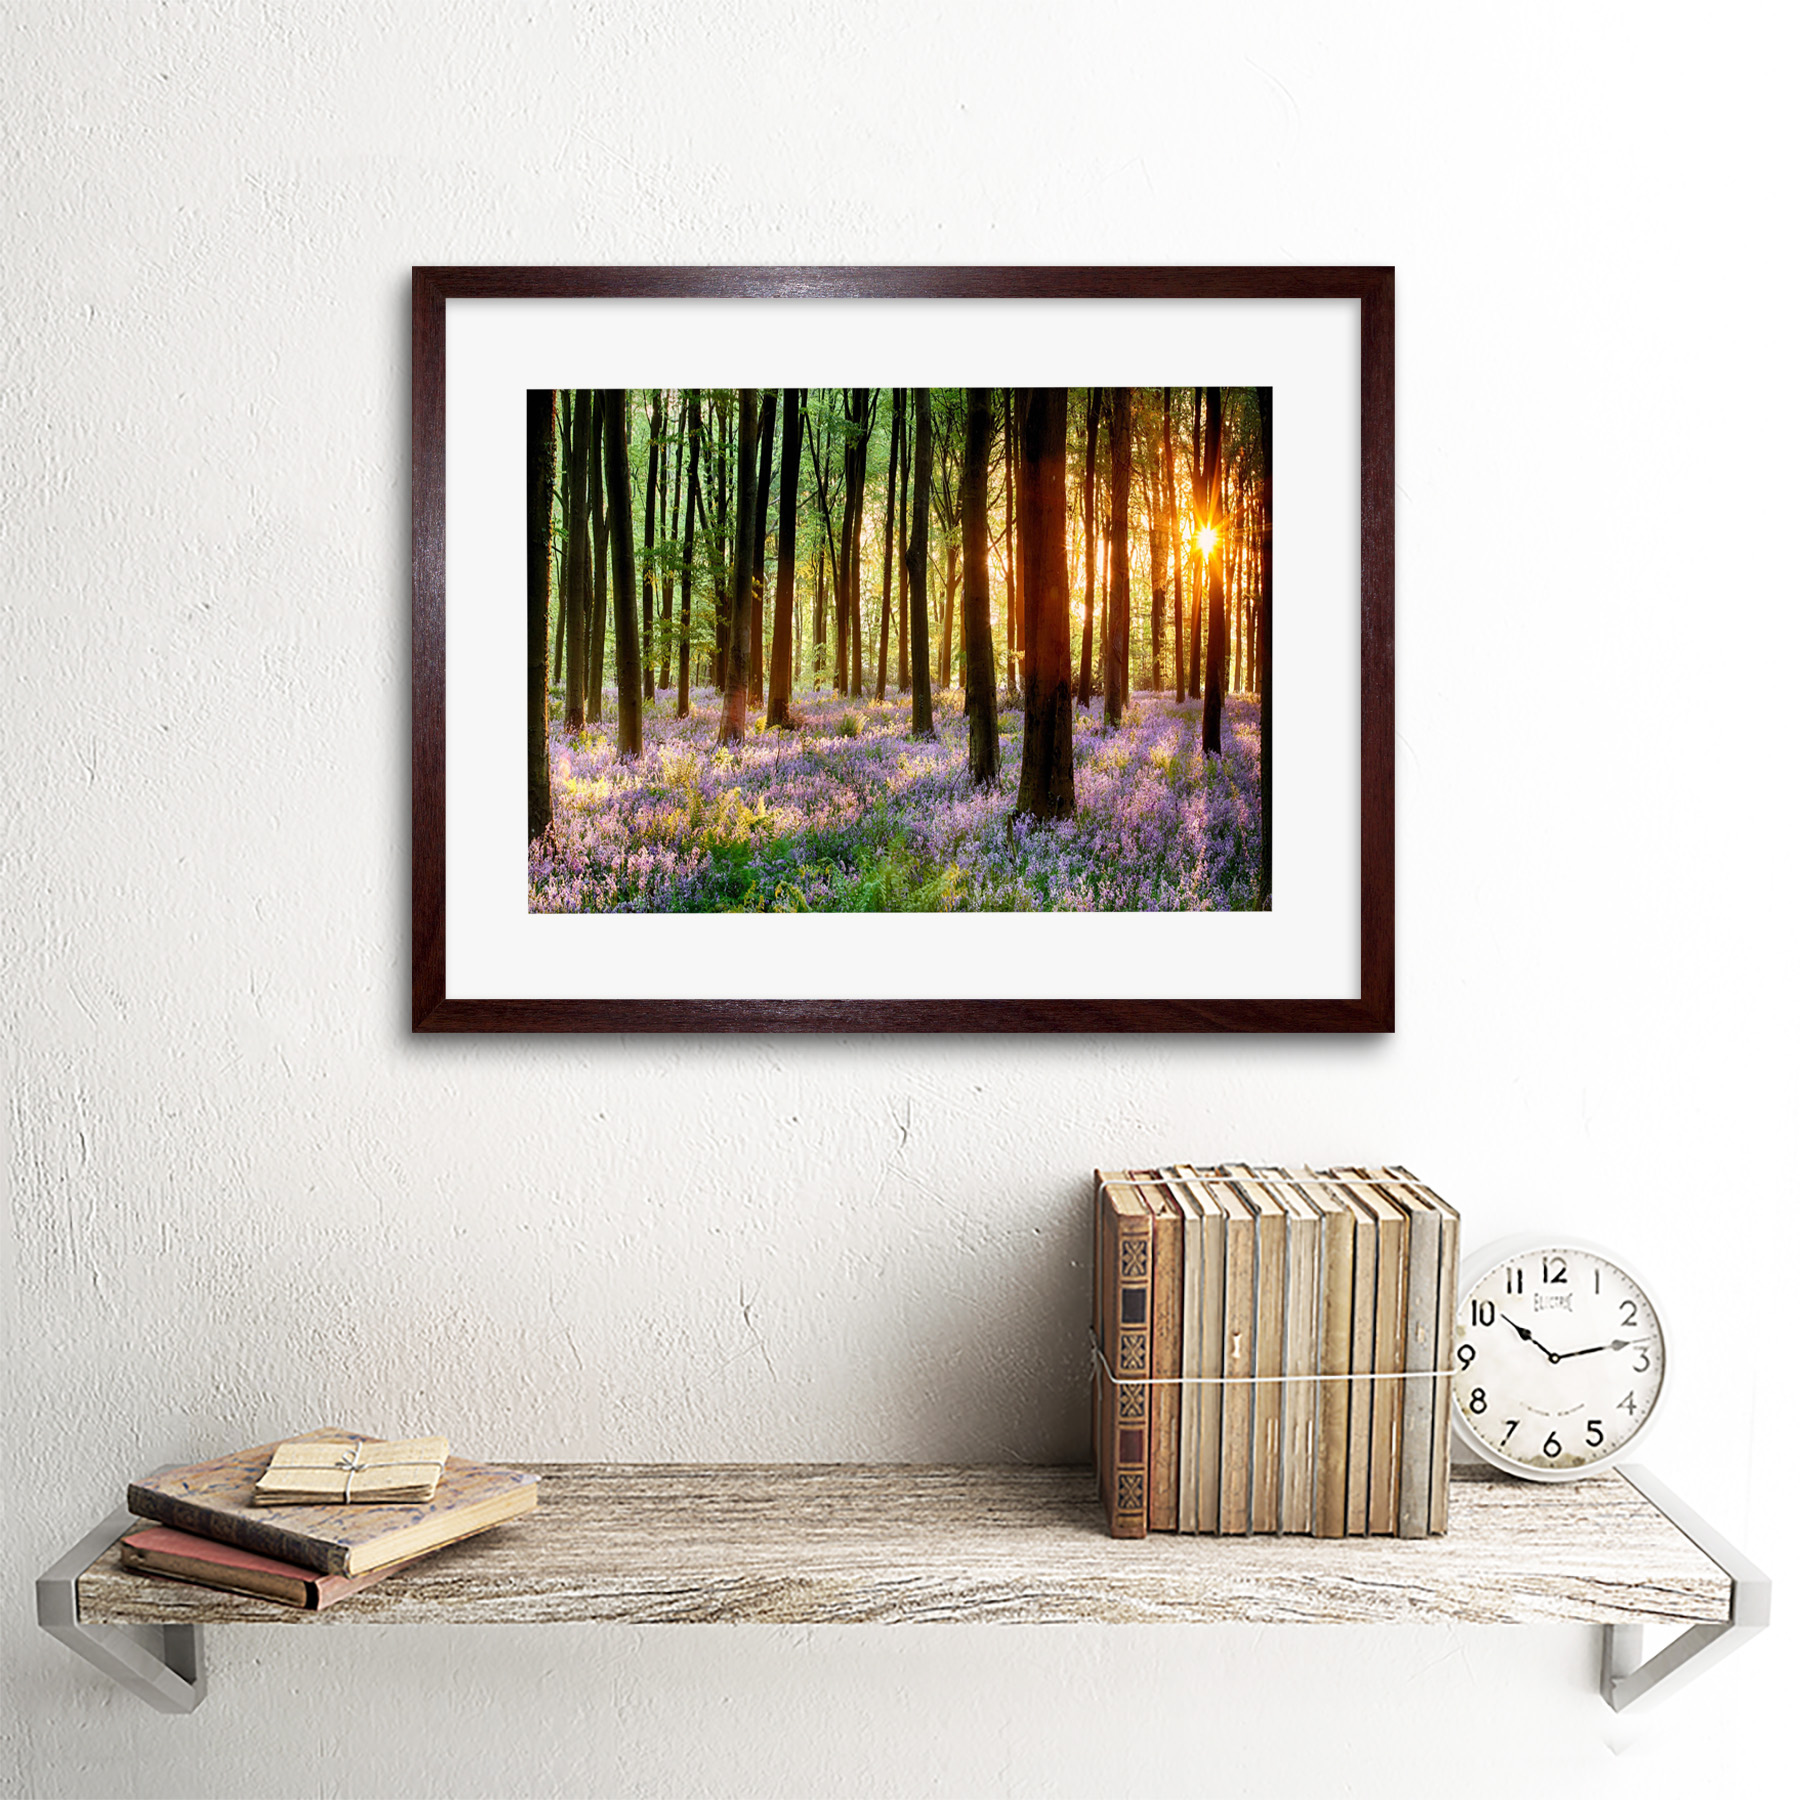 Bluebell Wood Sunrise Trees Photo Framed Art Print Picture /& Mount 12x16 Inch